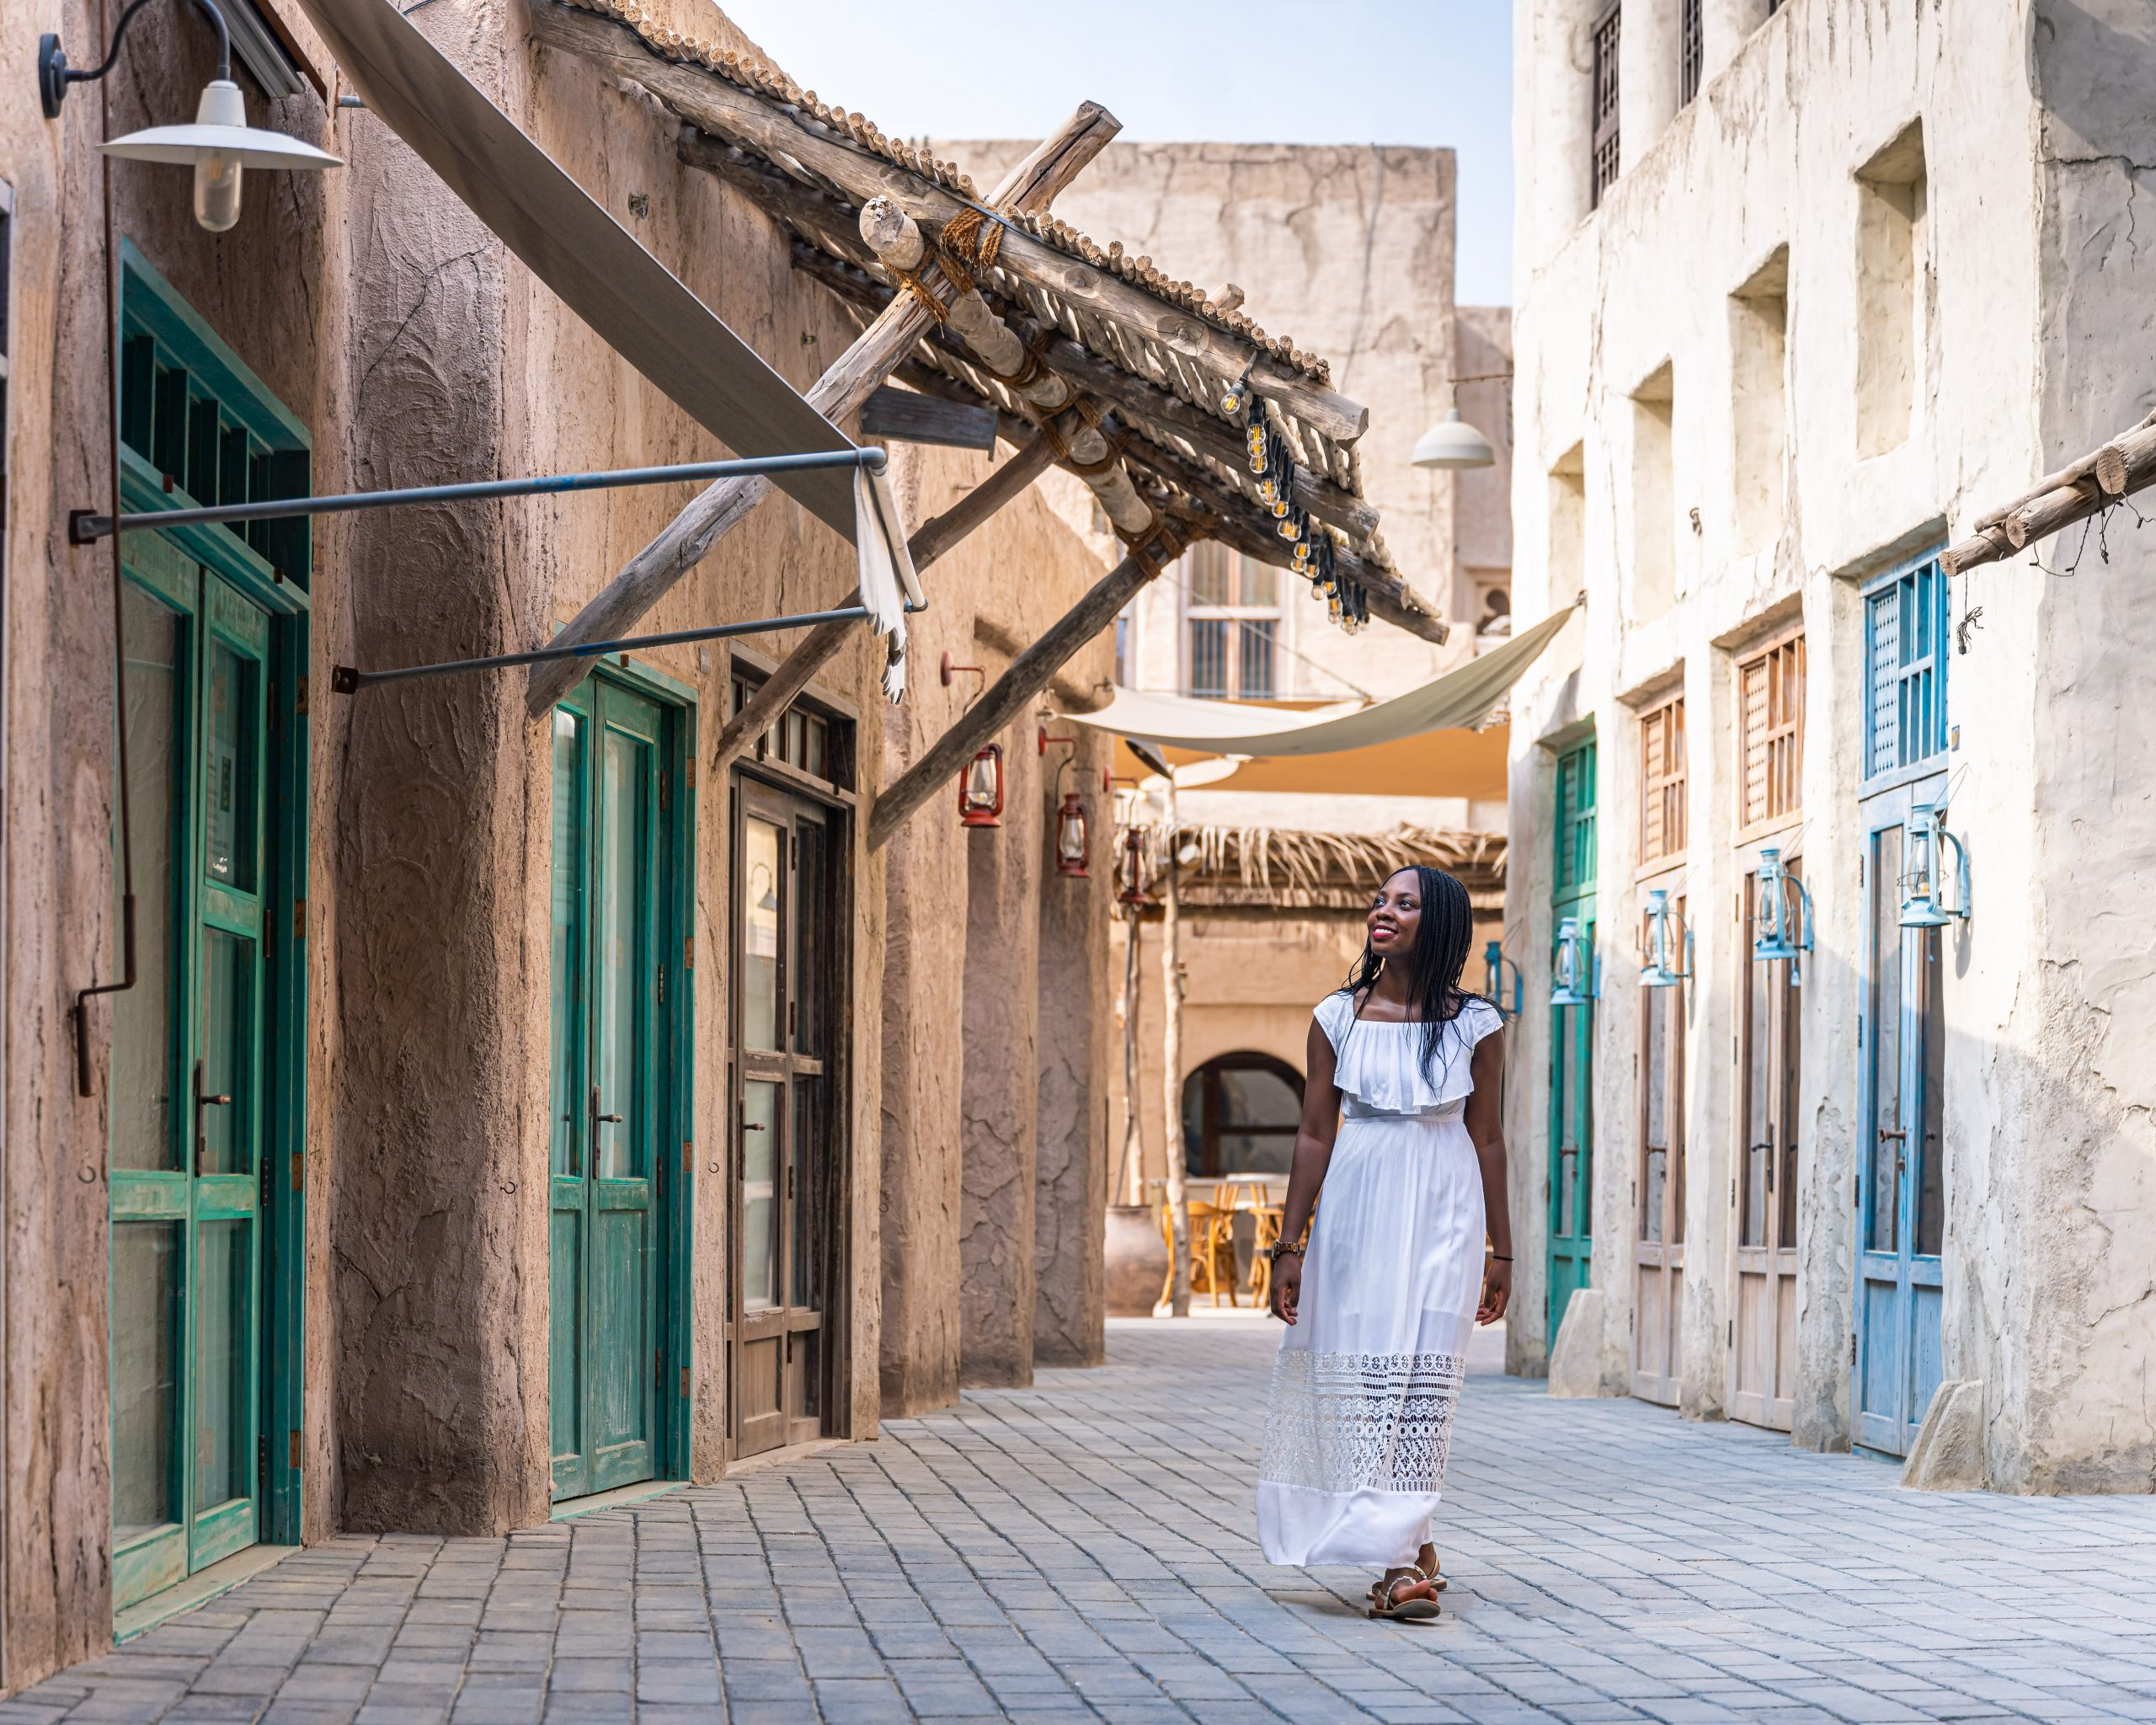 Ashleigh walking through the alley ways at Al Seef, Old Dubai